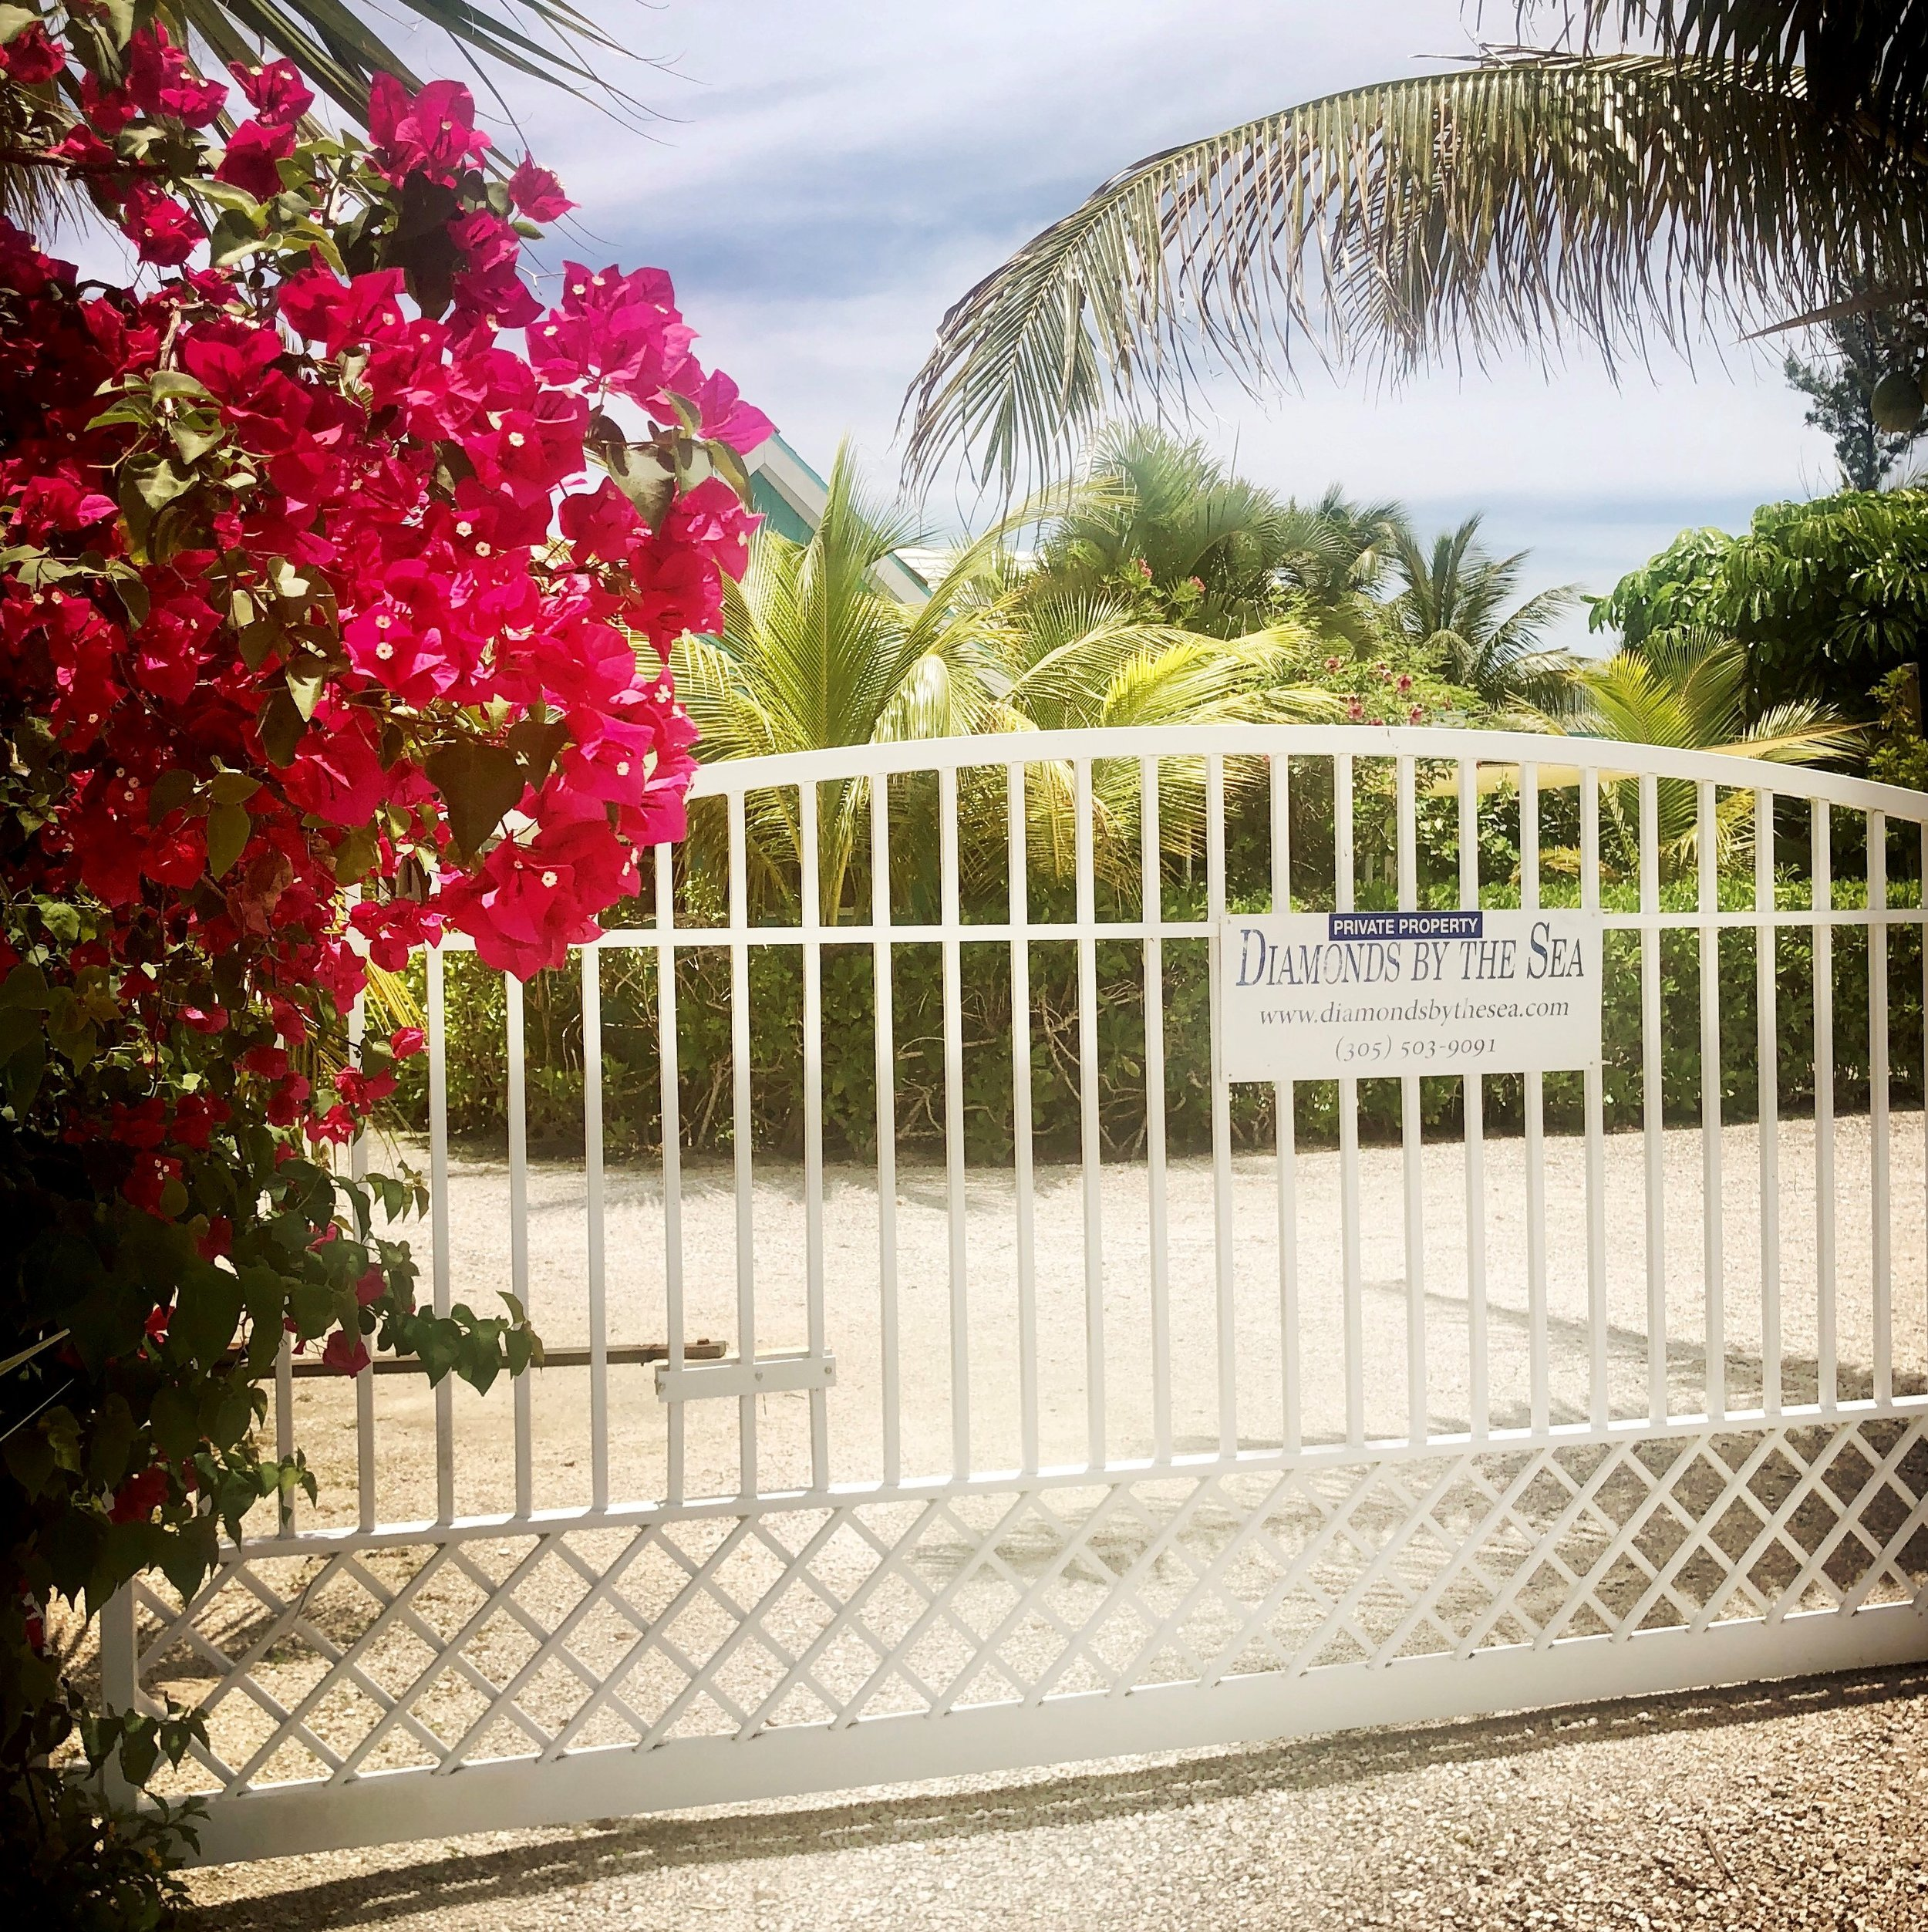 Open Air Places - Key Lime Cottage at Diamonds by the Sea 8.jpg